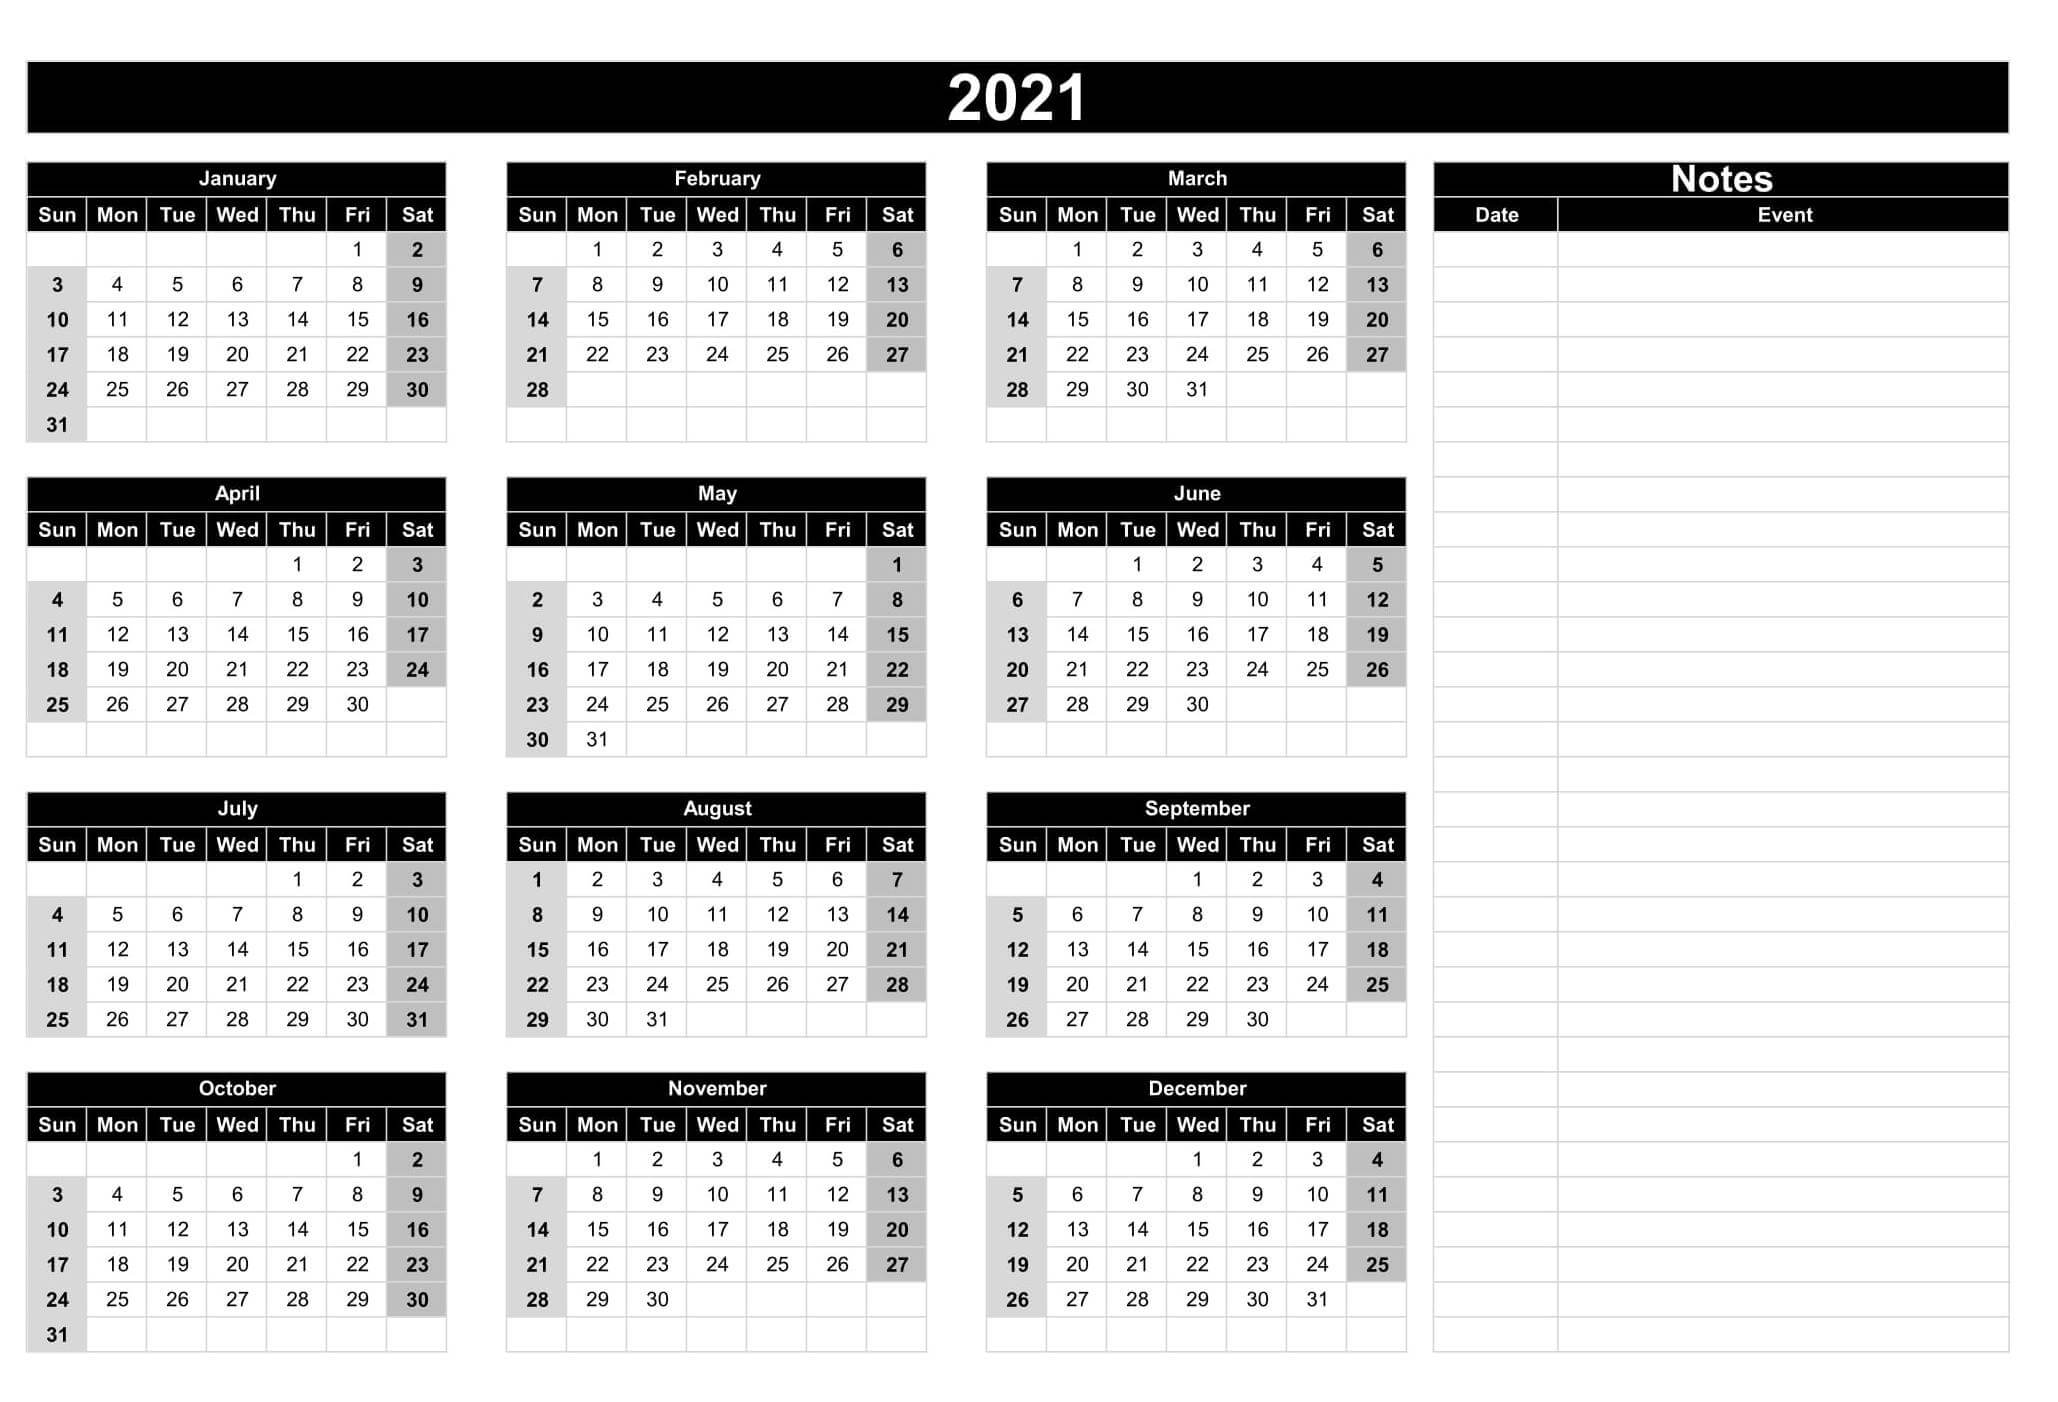 2021 Calendar Template With Notes